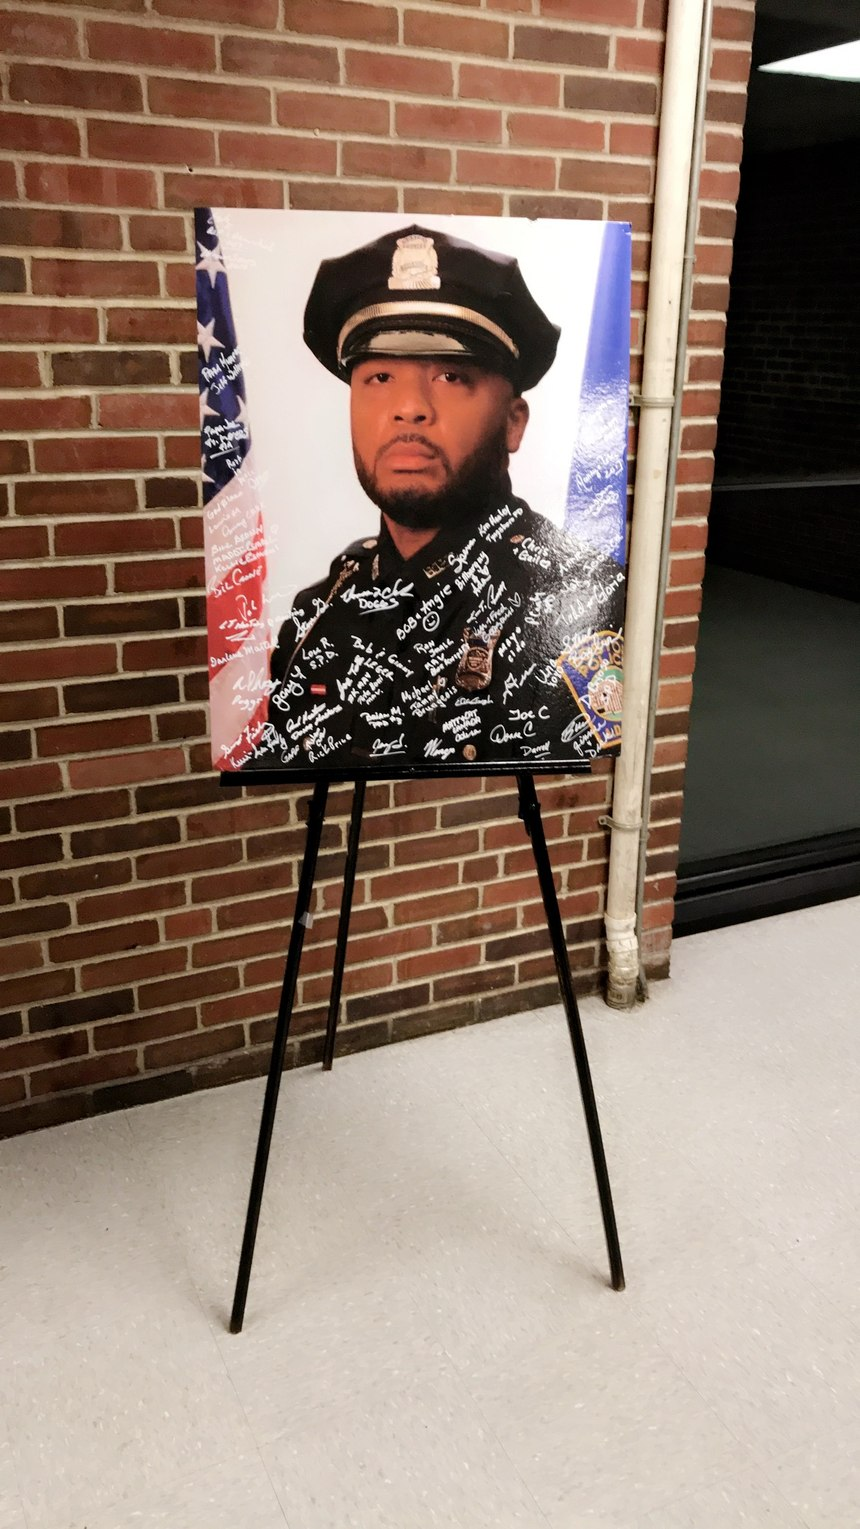 At a memorial ceremony, signatures cover an image of D.J.